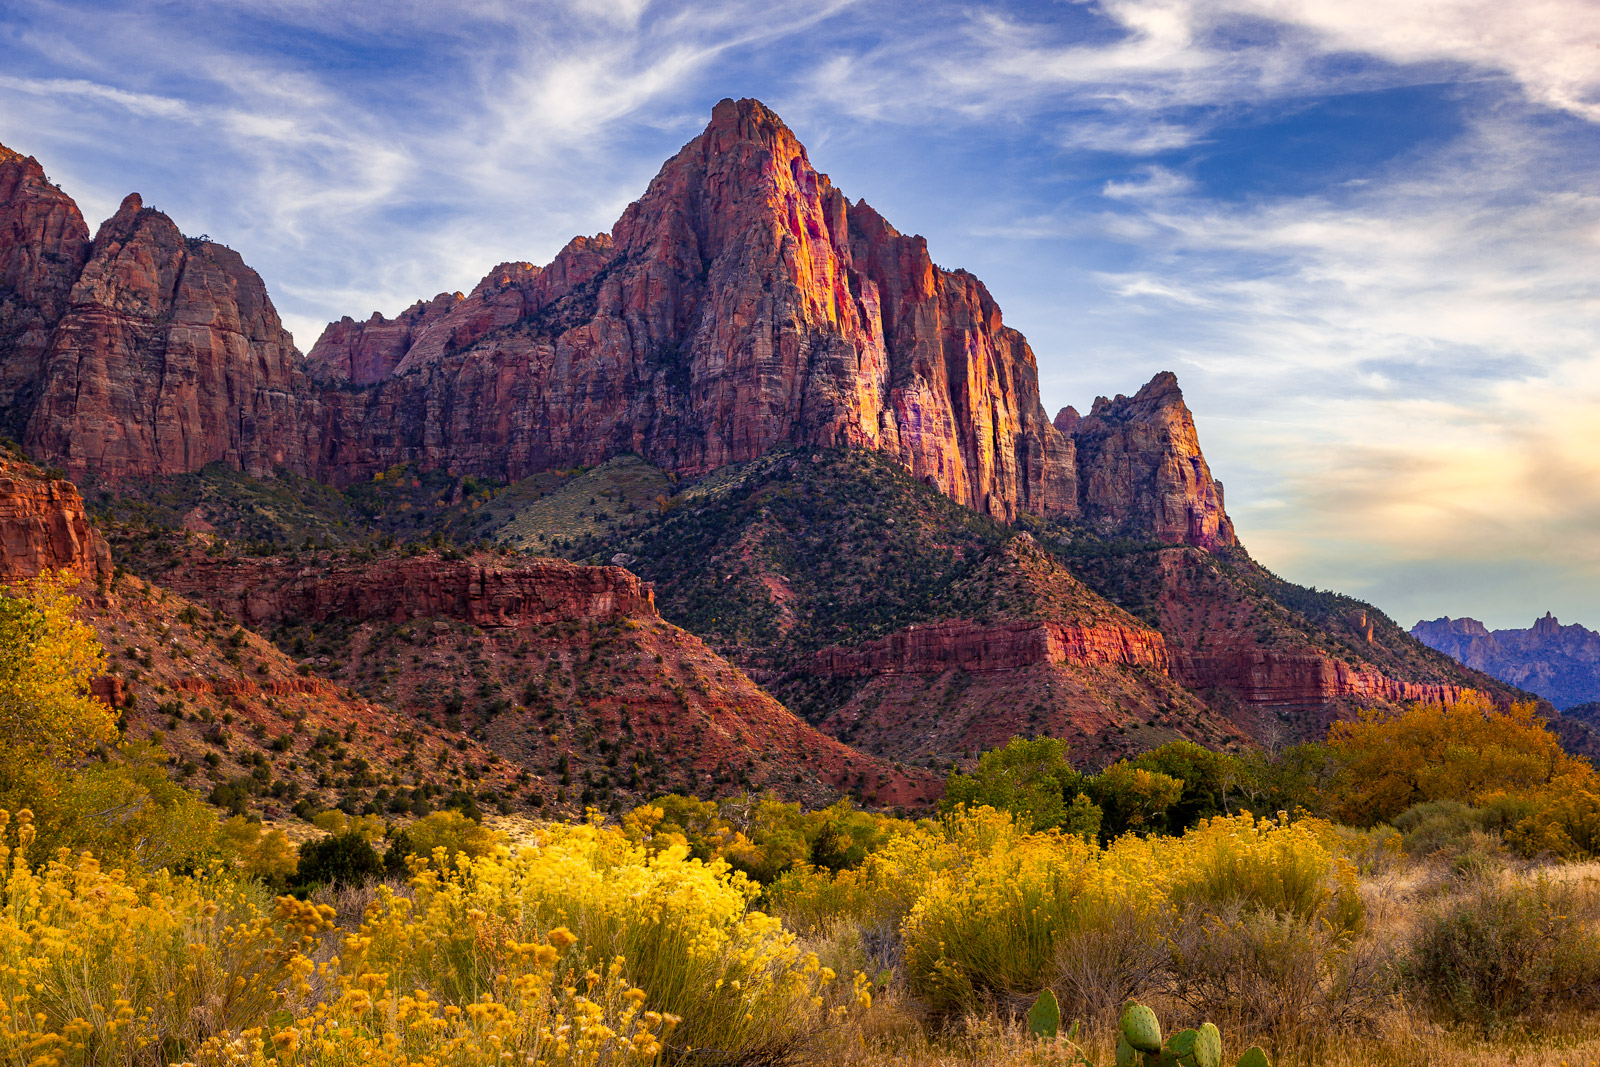 Utah, Zion Park, The Watchman, River, Mountain, photo